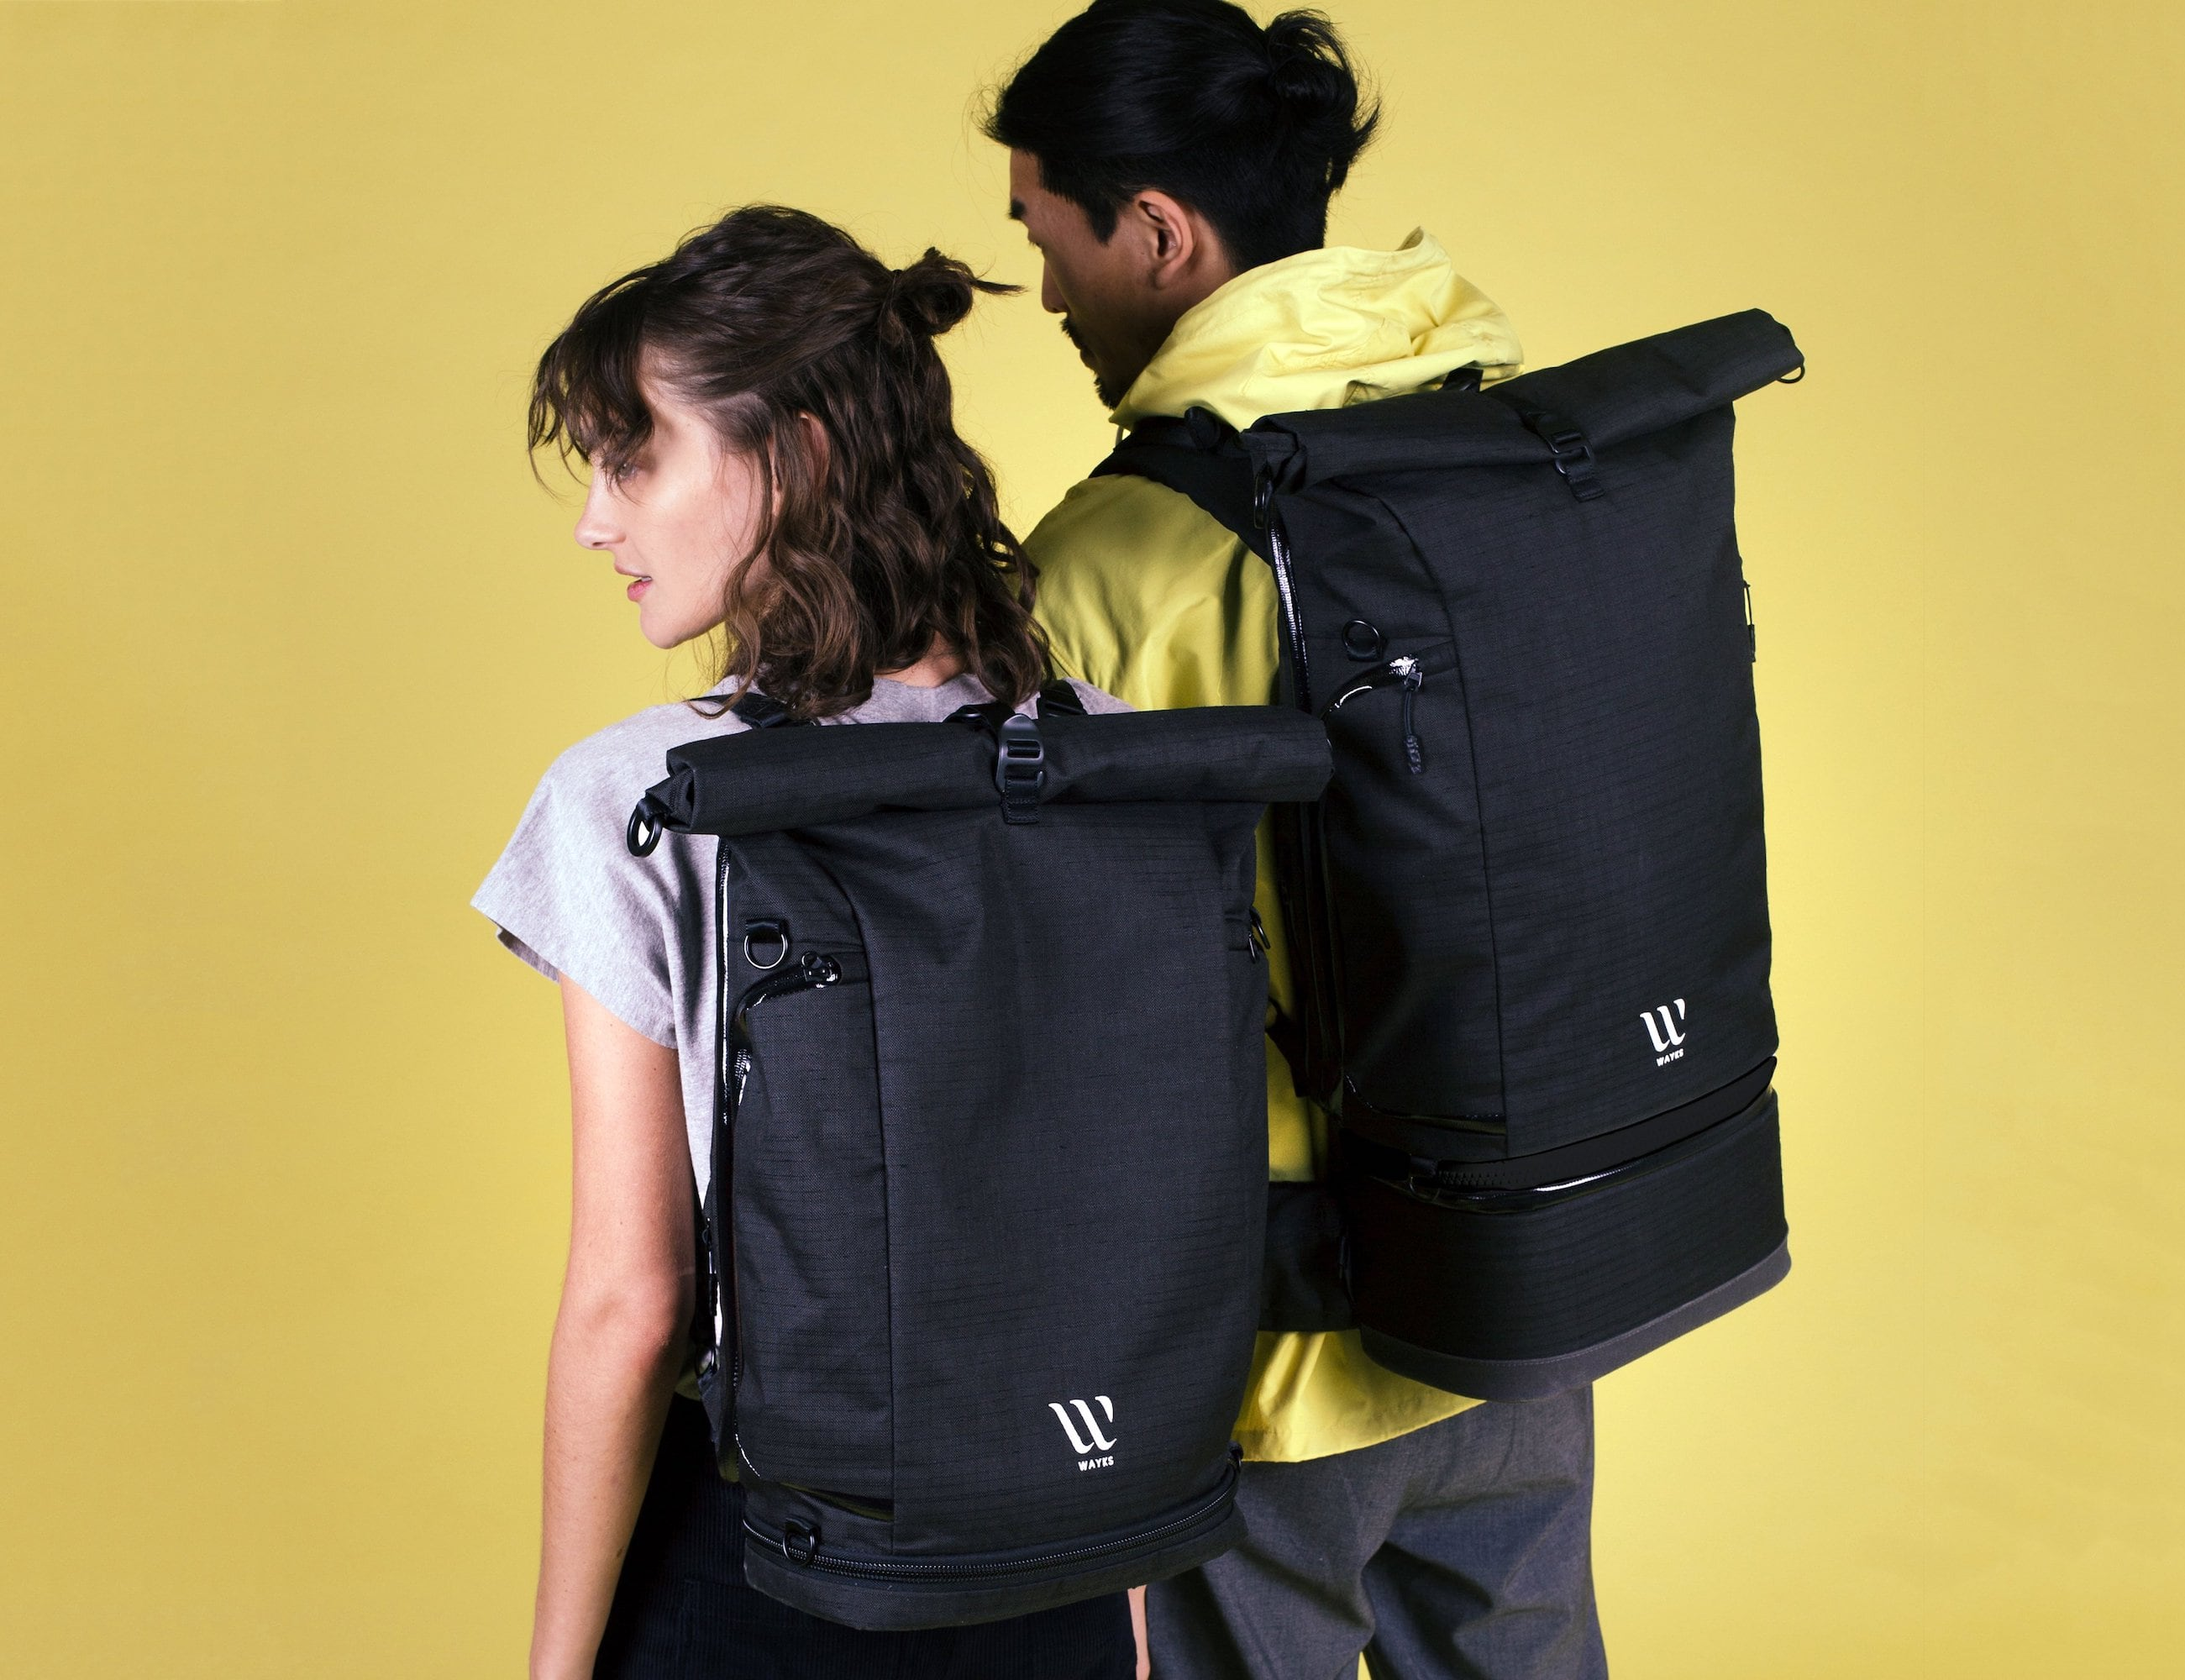 WAYKS ONE Transformable Travel Backpack